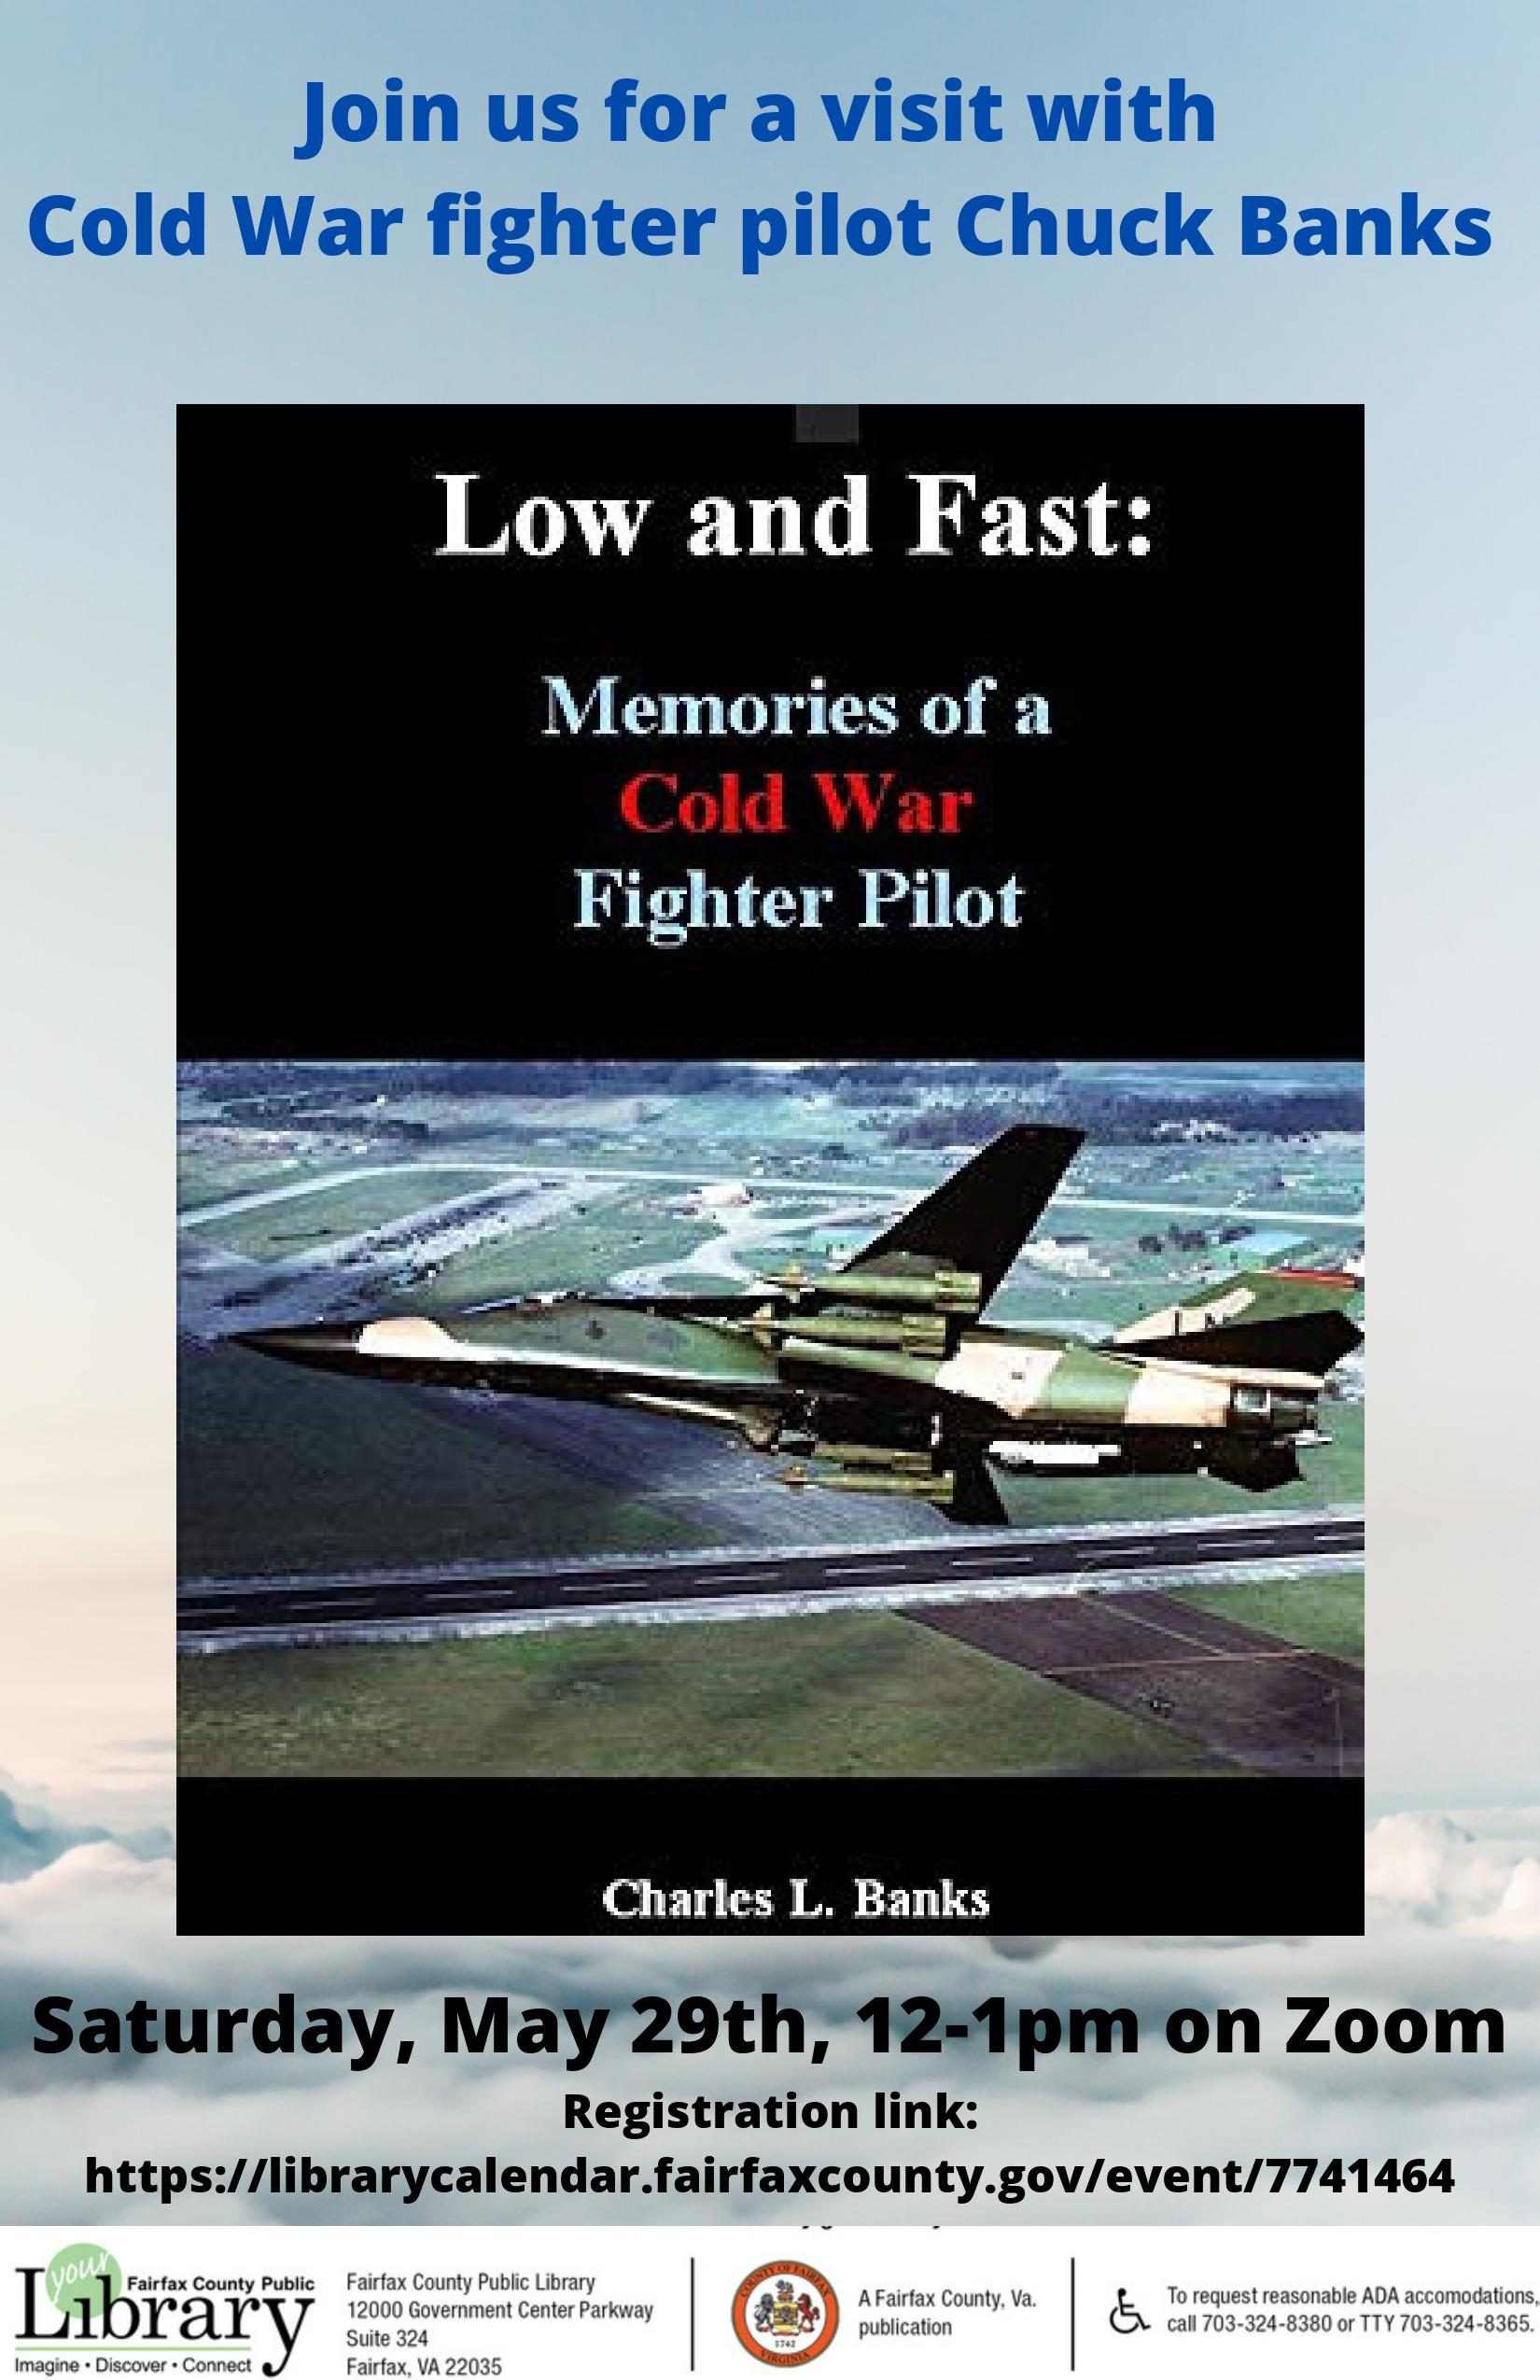 Low and Fast: Memories of a Cold War Pilot